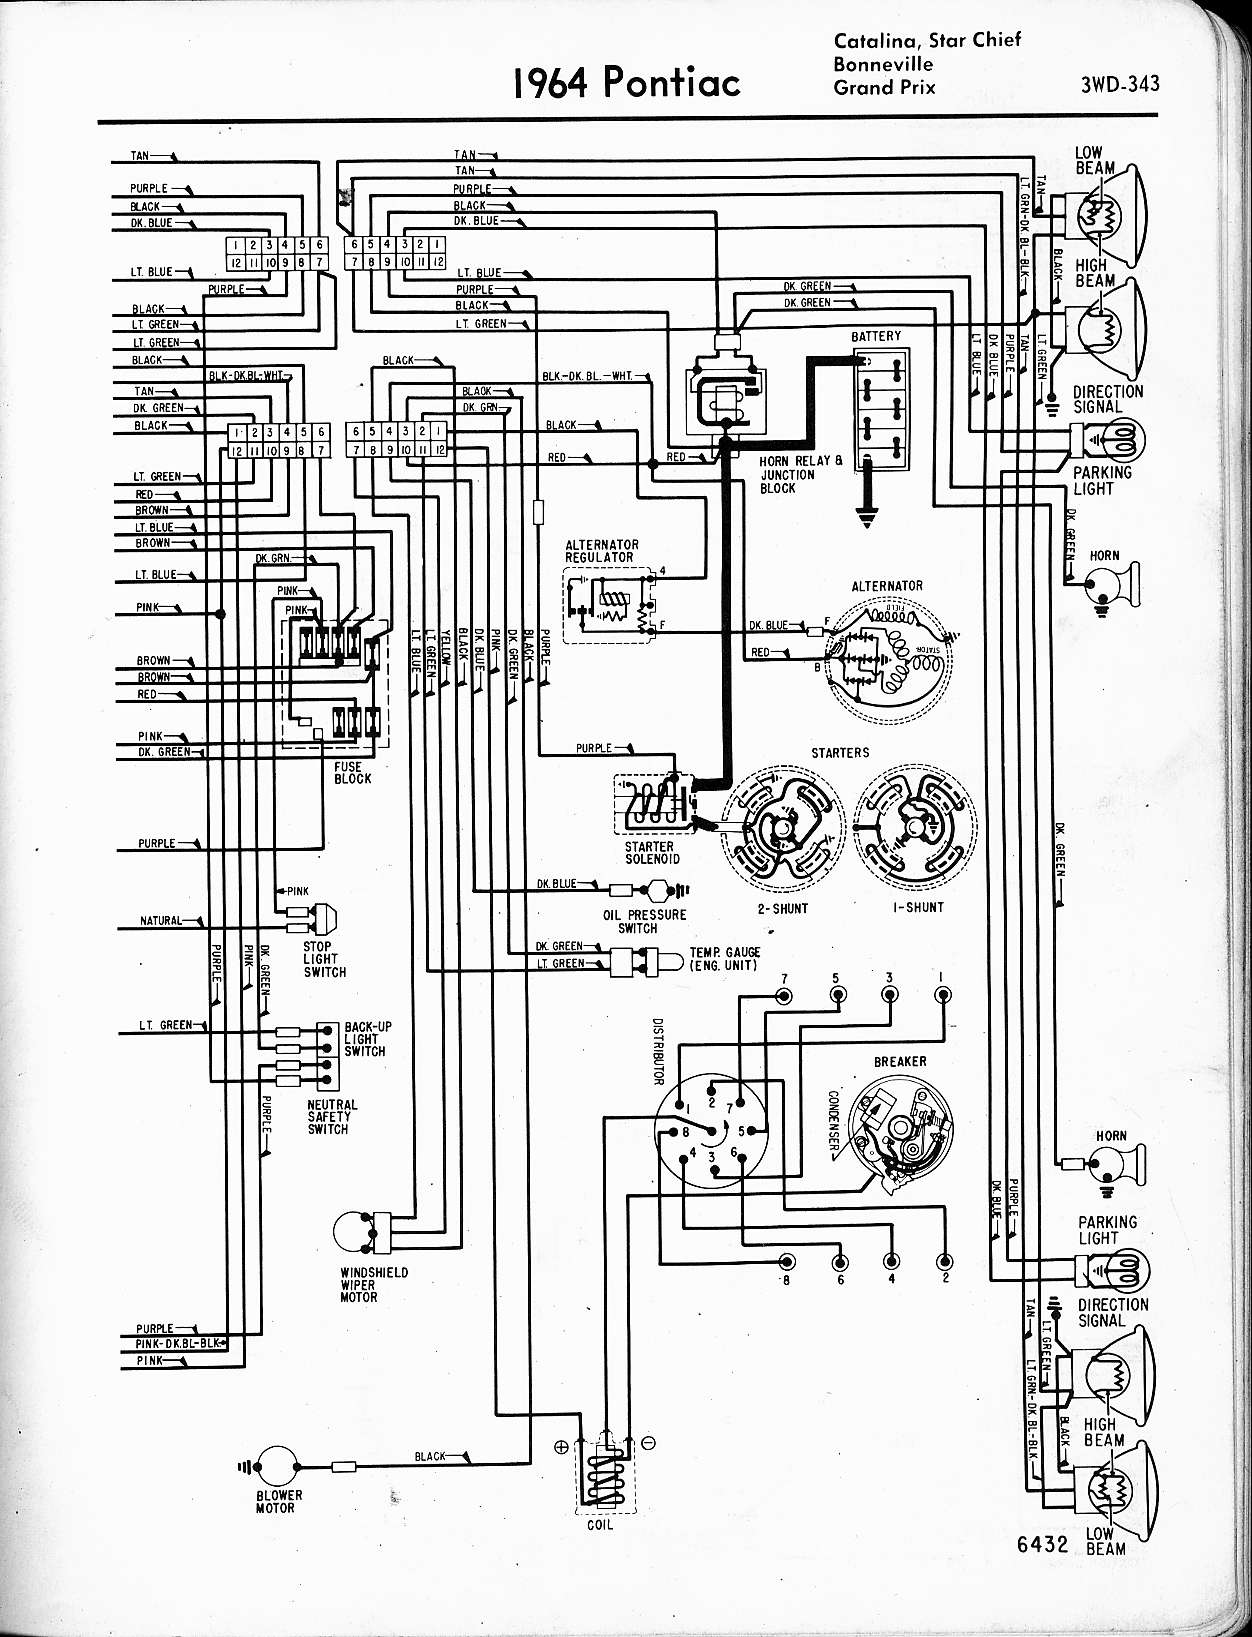 70 Gto Wiring Diagram Design Of Electrical Circuit 67 Barracuda Fuse Box Dash All Rh 10 Drk Ov Roden De 1967 1966